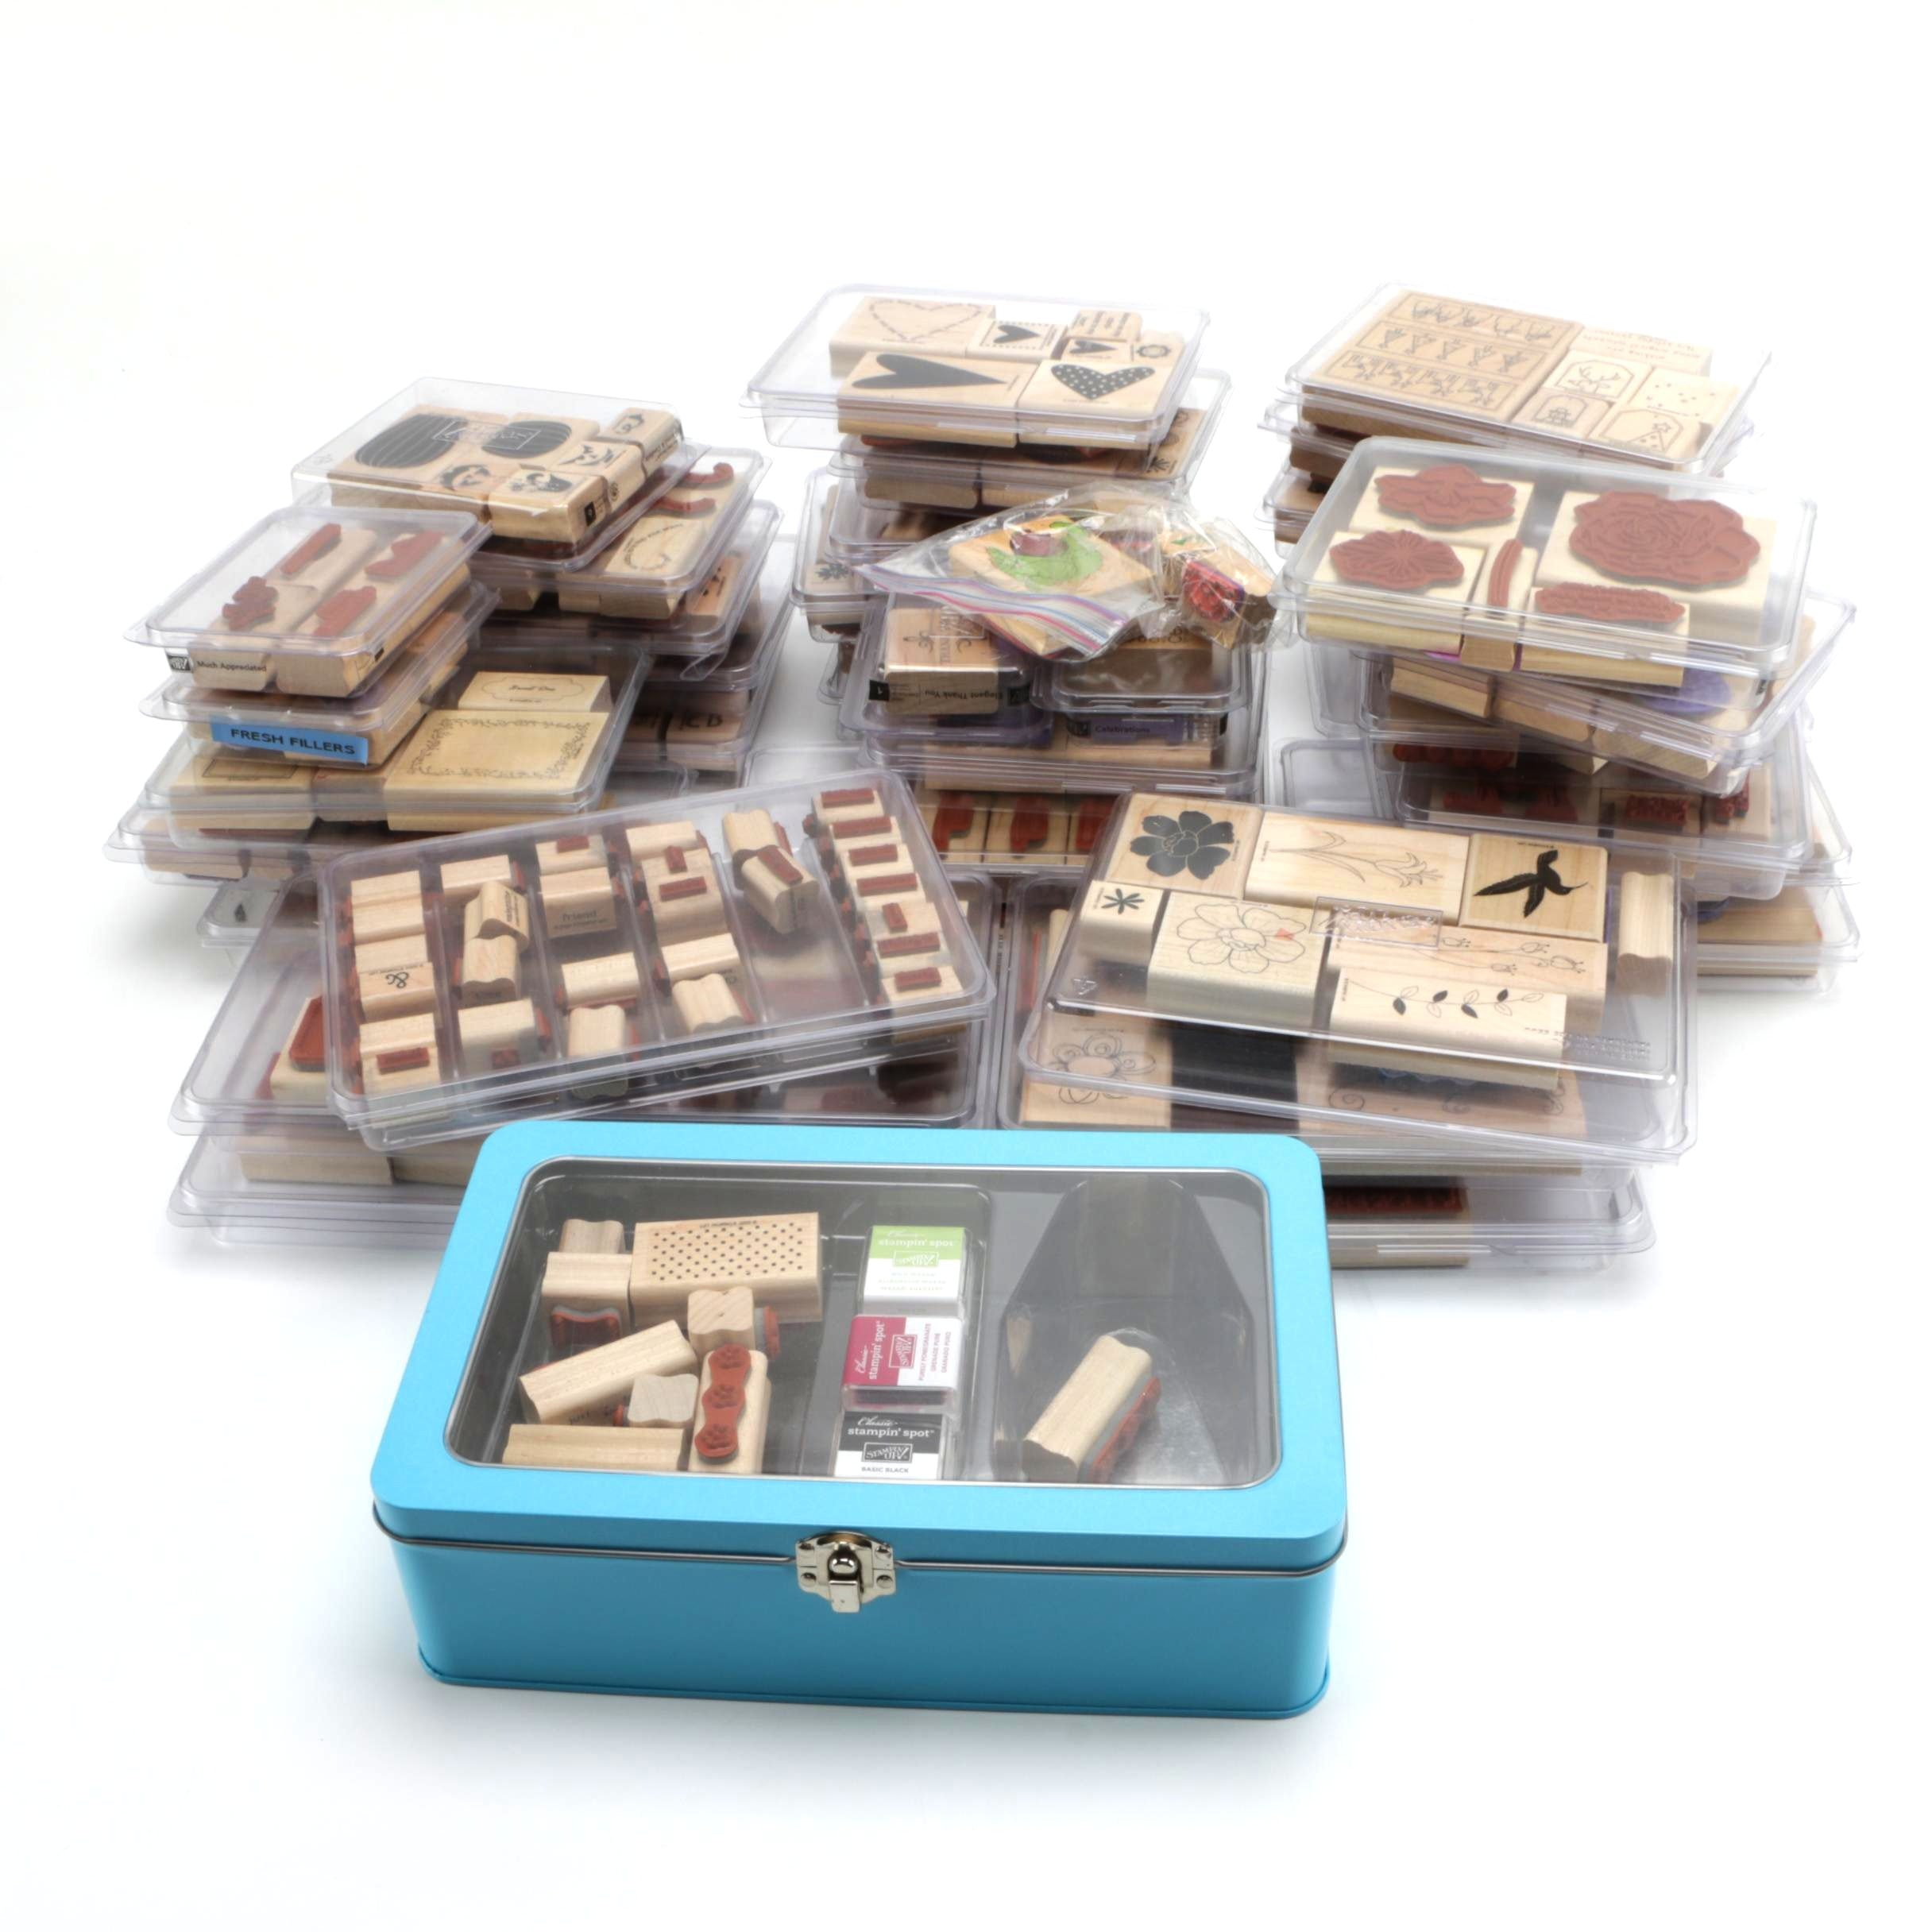 Large Collection of Rubber Stamp Kits and Metal Case